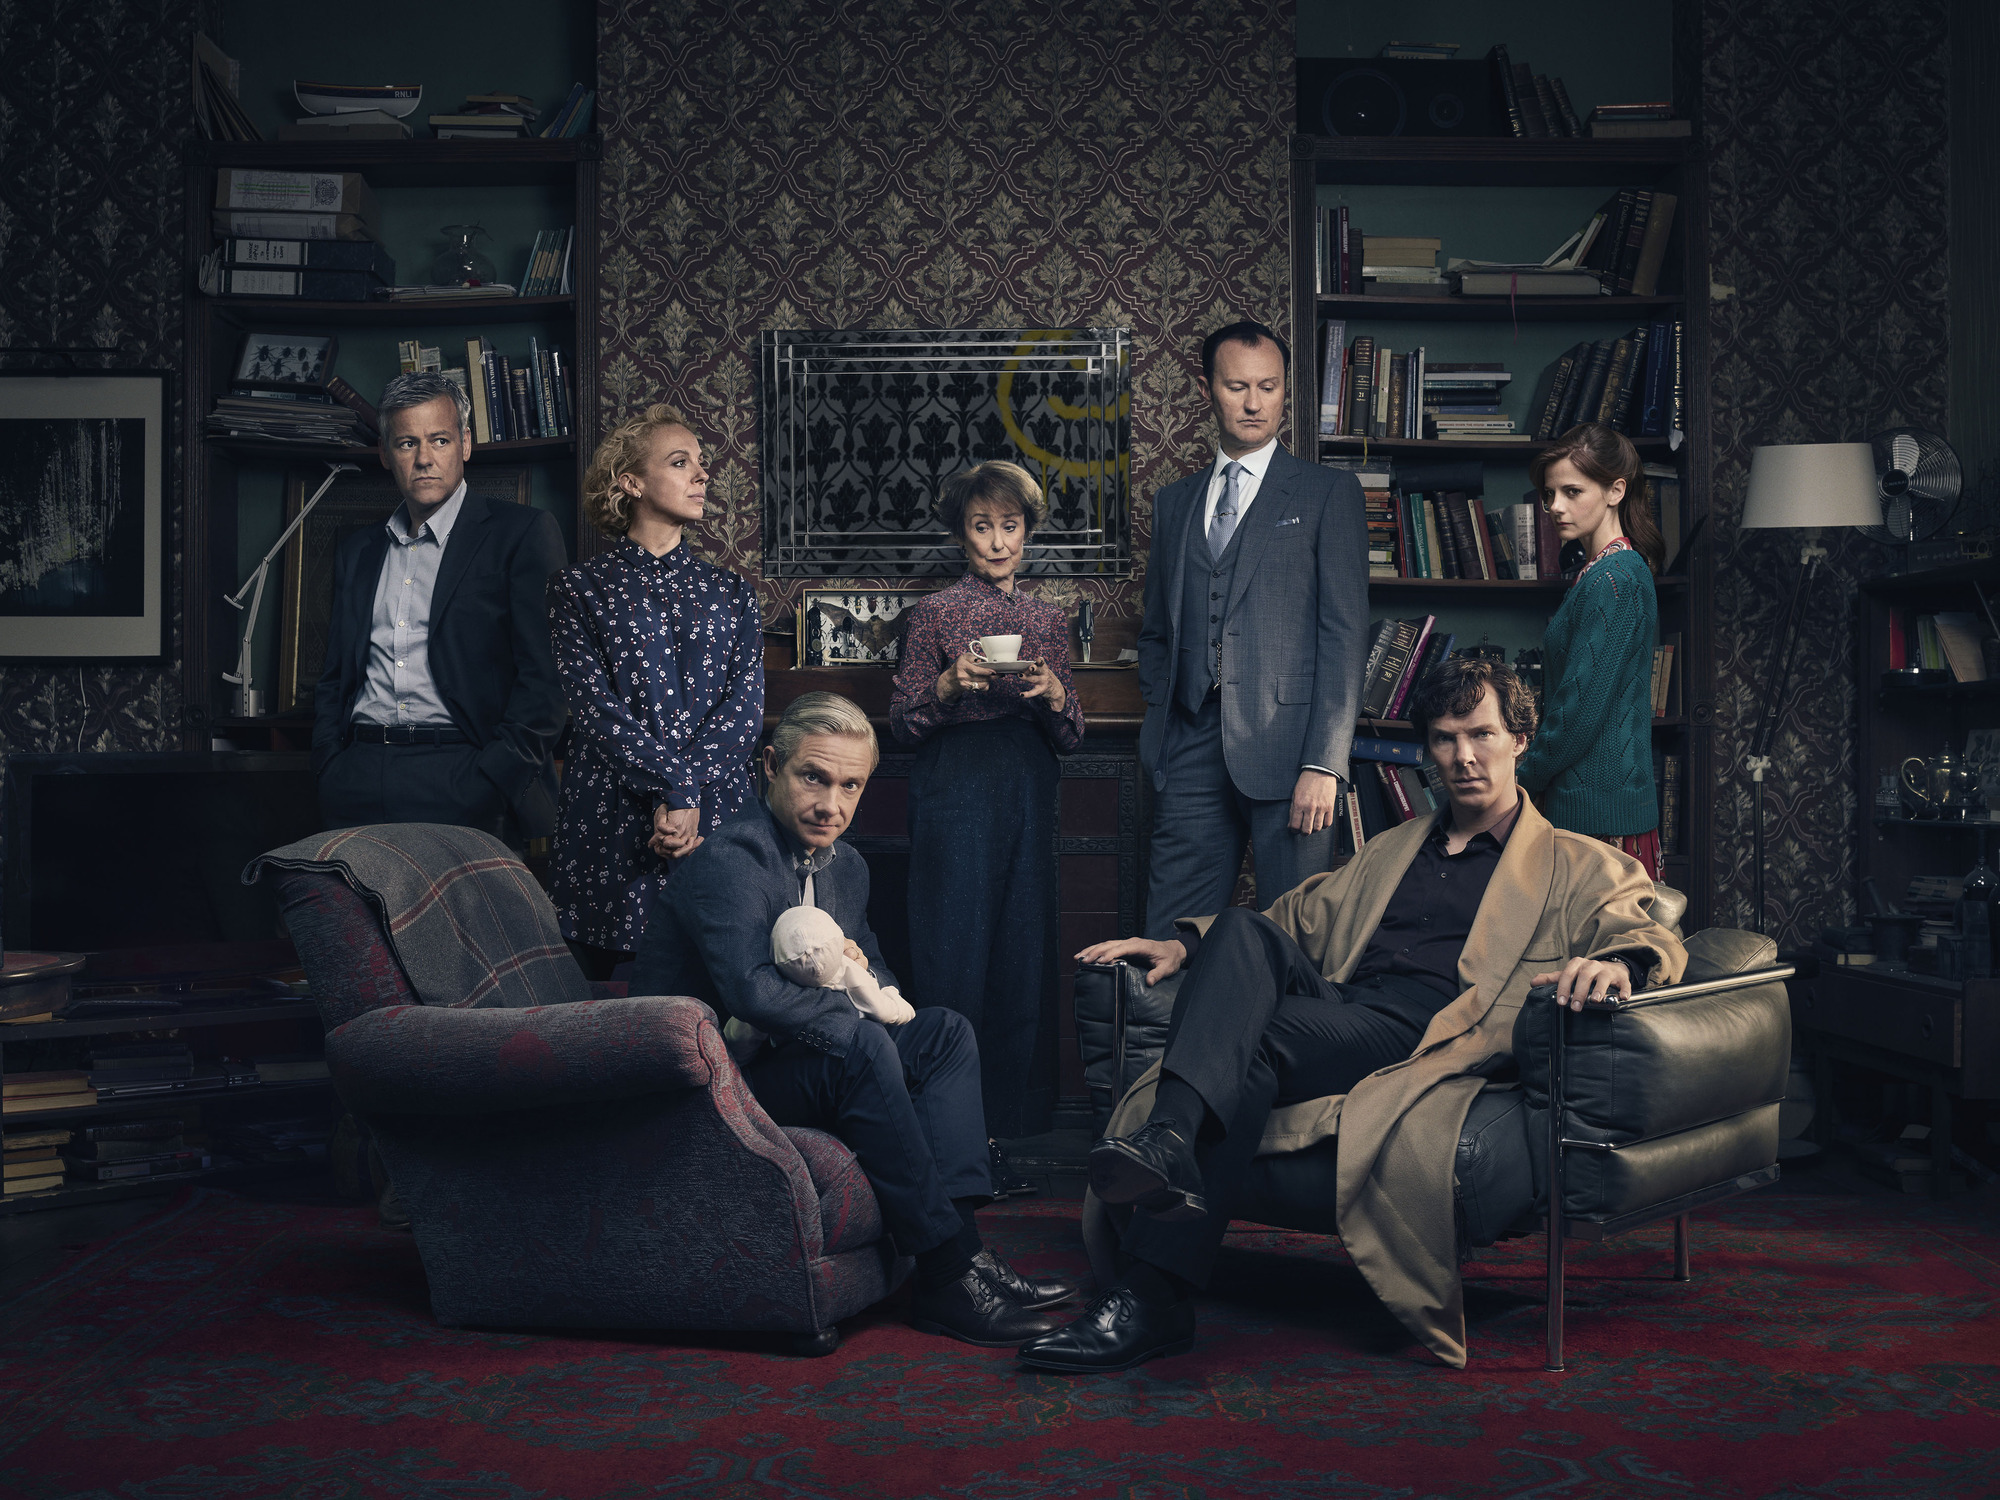 WARNING: Embargoed for publication until 00:01:00 on 18/12/2016 - Programme Name: Sherlock - TX: 01/01/2017 - Episode: Sherlock S4 - Generic (No. 1) - Picture Shows: (L-R) **STRICTLY EMBARGOED UNTIL 18TH DECEMBER** Detective Inspector Lestrade (RUPERT GRAVES), Mary Watson (AMANDA ABBINGTON), Dr John Watson (MARTIN FREEMAN), Mrs Hudson (UNA STUBBS), Mycroft Holmes (MARK GATISS), Sherlock Holmes (BENEDICT CUMBERBATCH), Molly Hooper (LOUISE BREALEY) - (C) Hartswood Films - Photographer: Todd Antony